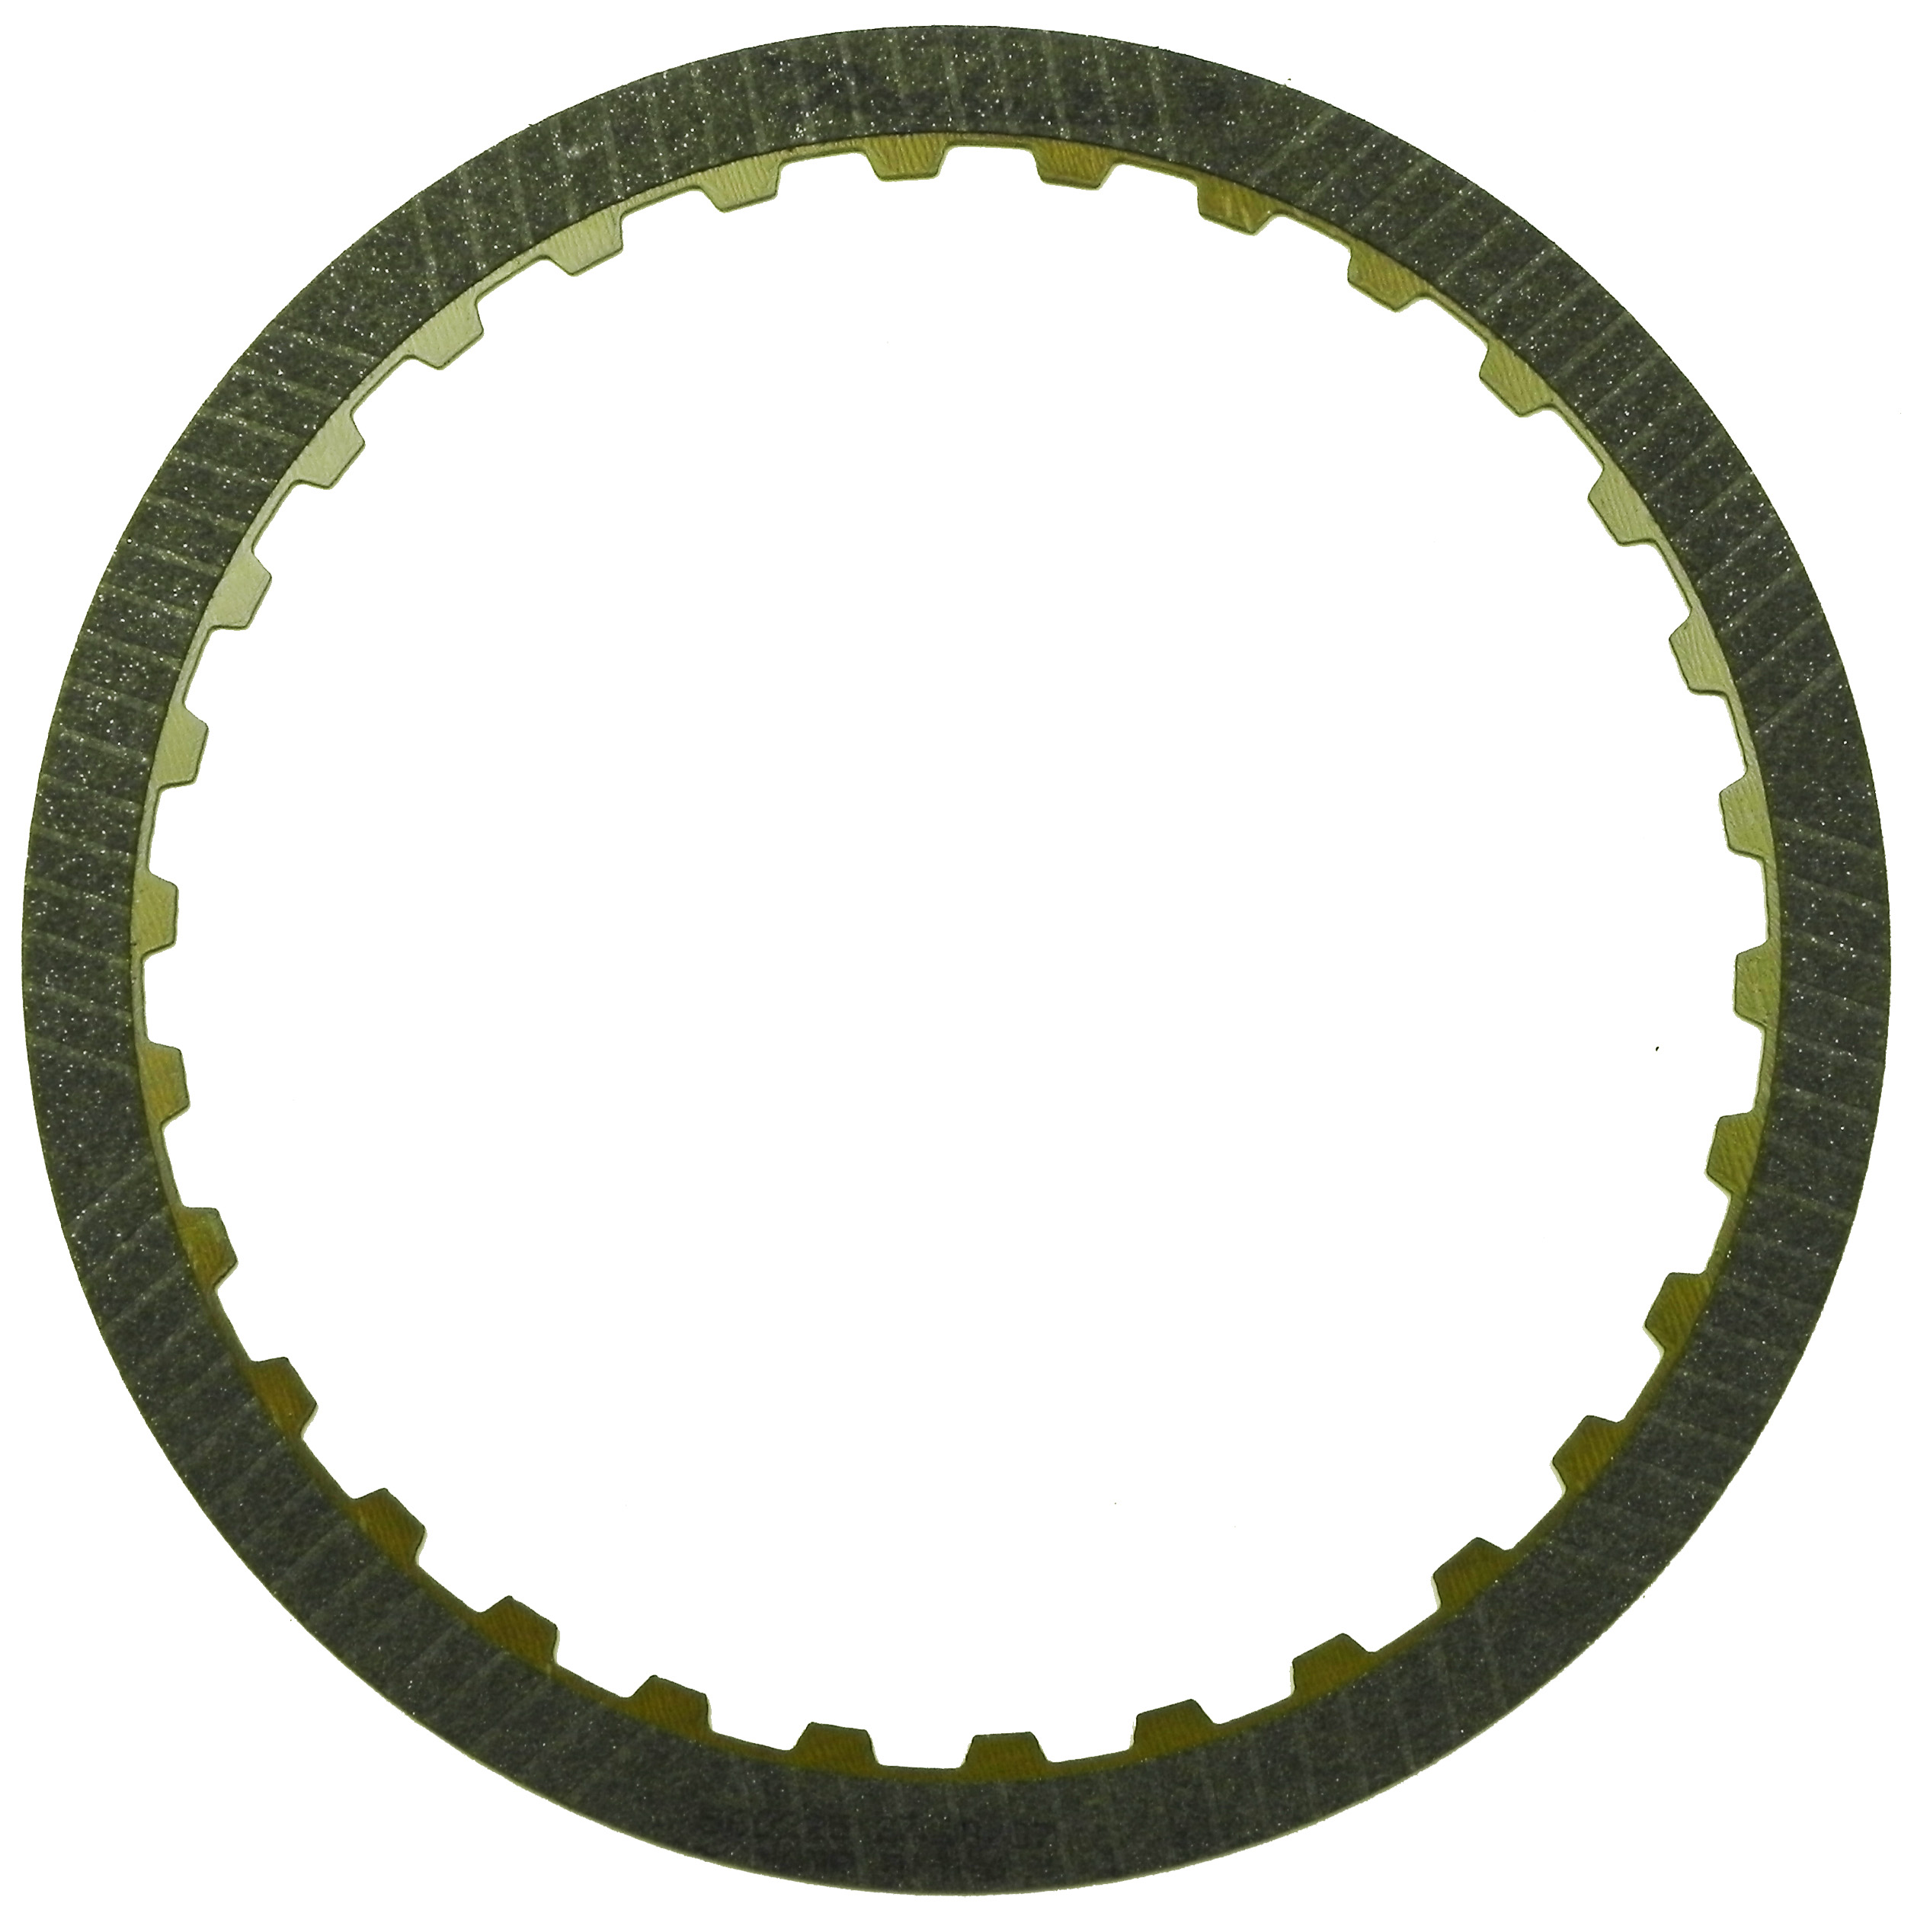 R560225 | 2002-ON Friction Clutch Plate High Energy Direct, Intermediate High Energy